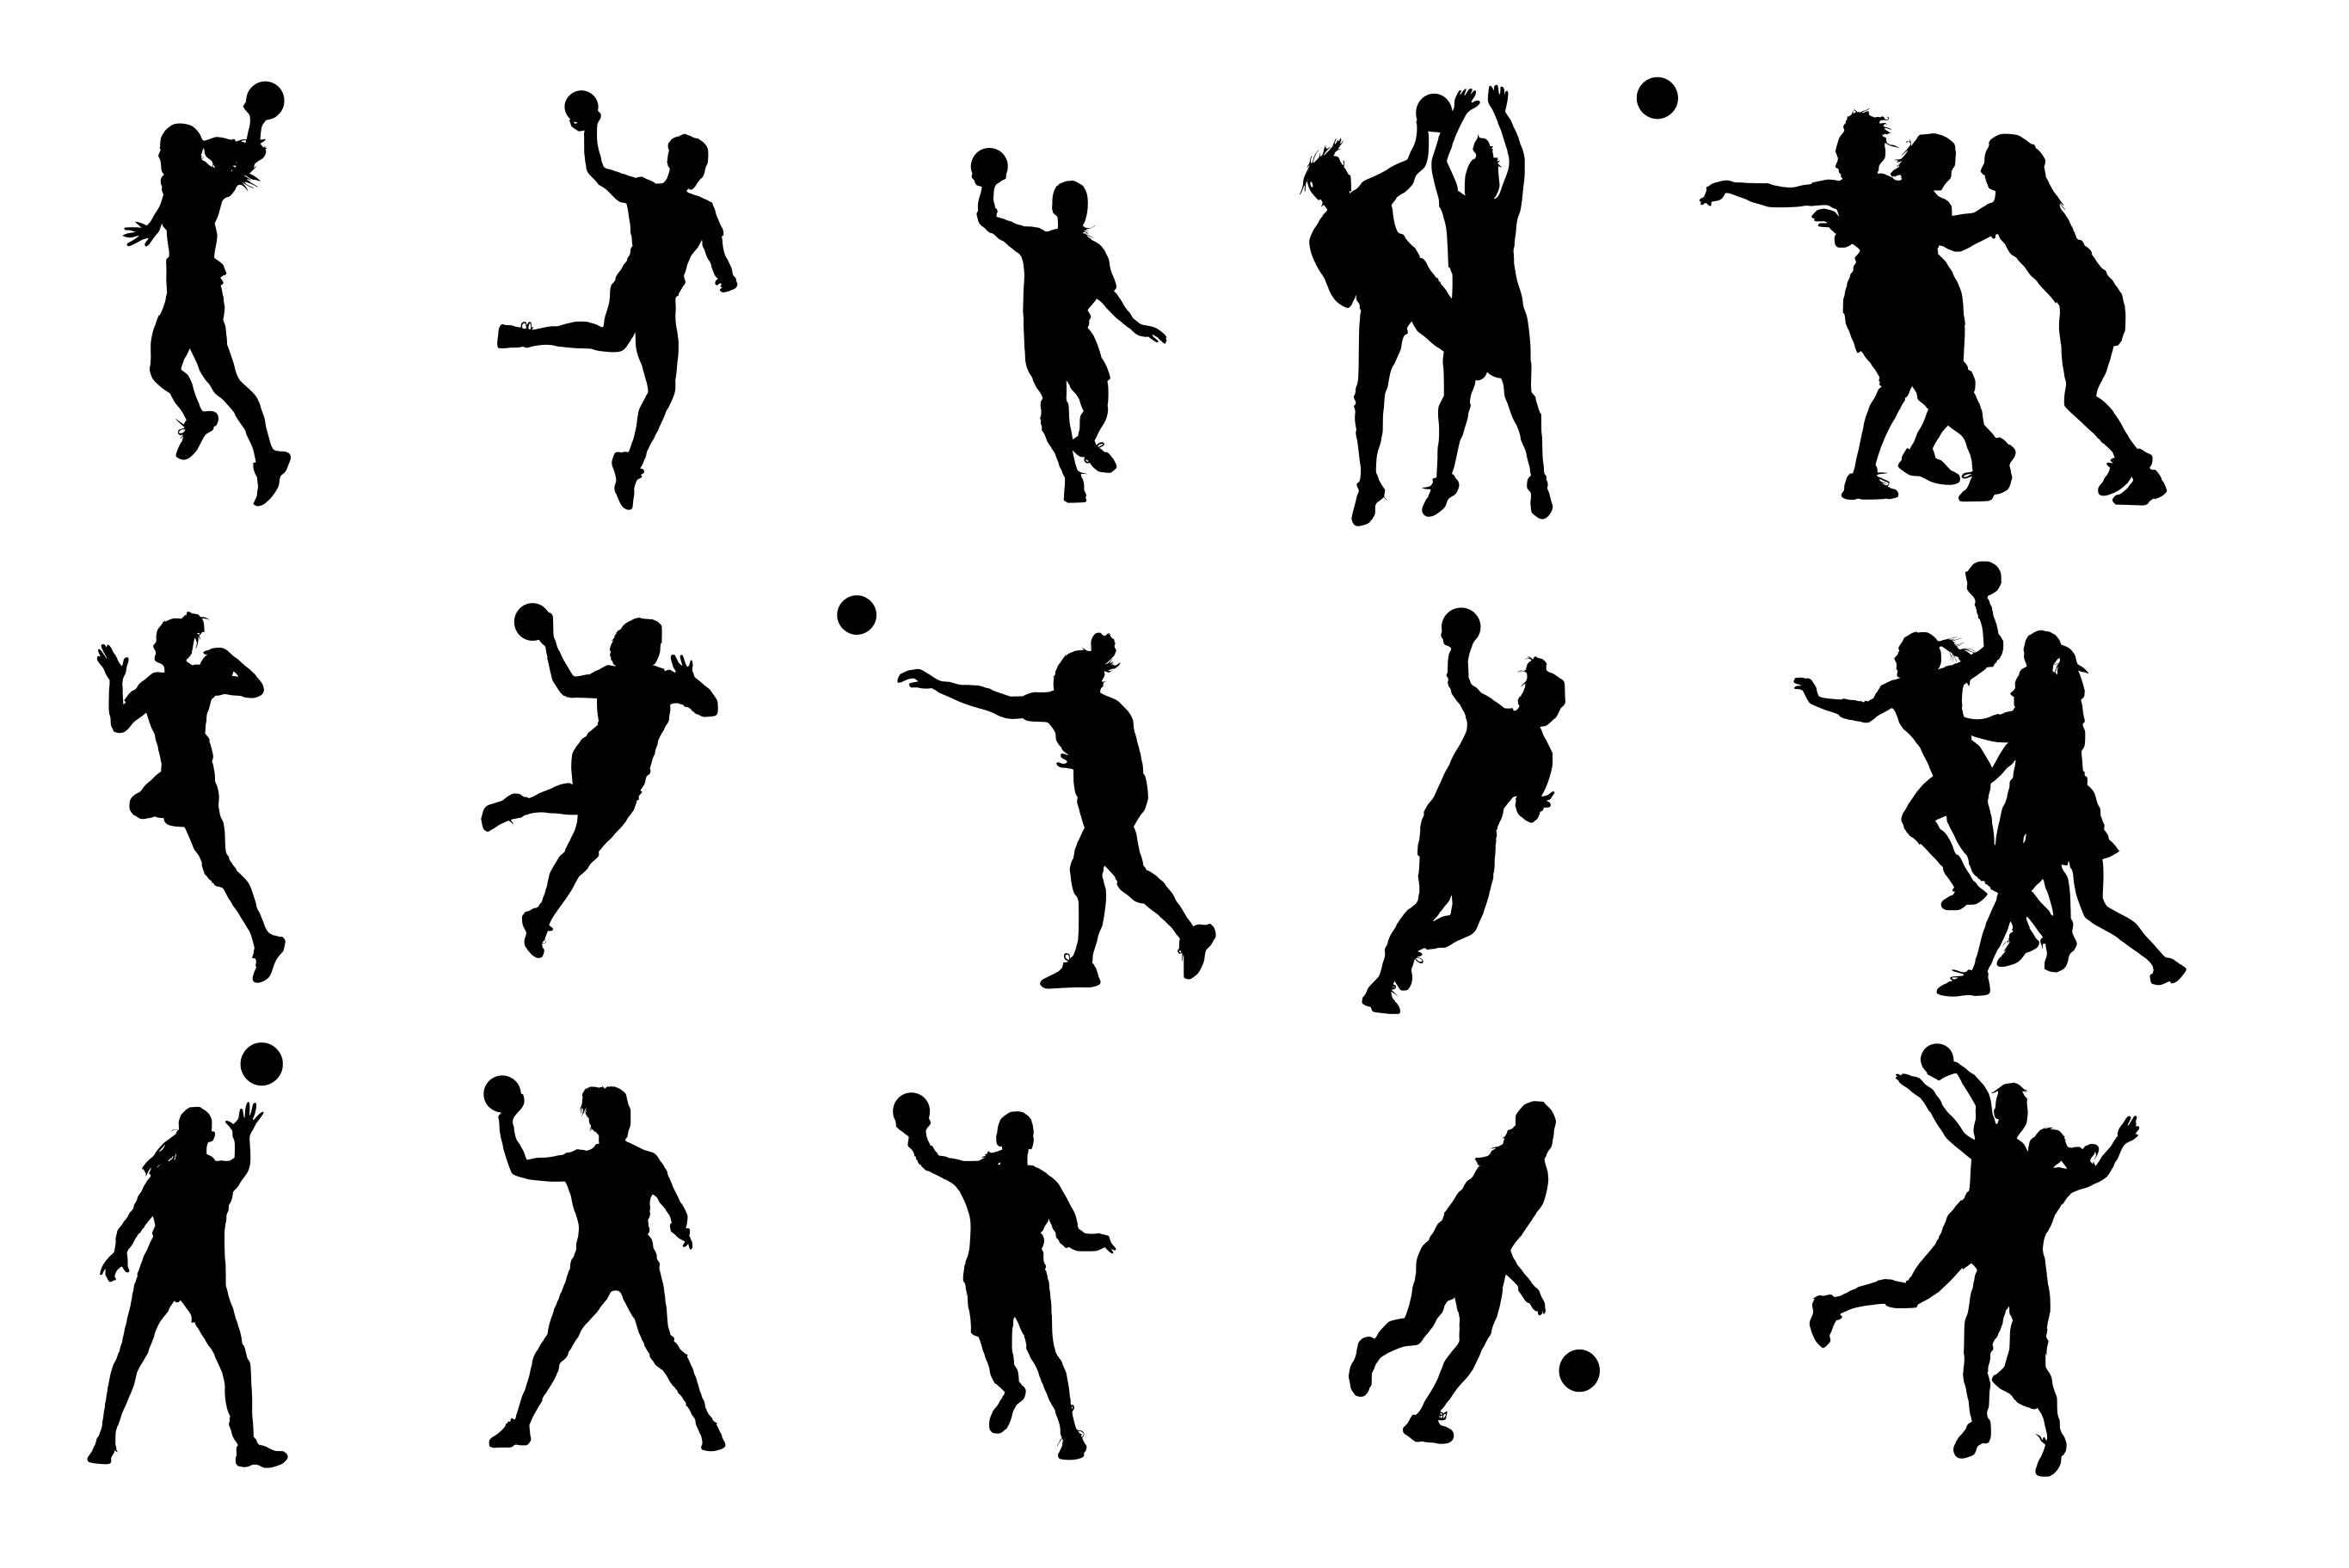 15 Handball Silhouette (PNG Transparent).